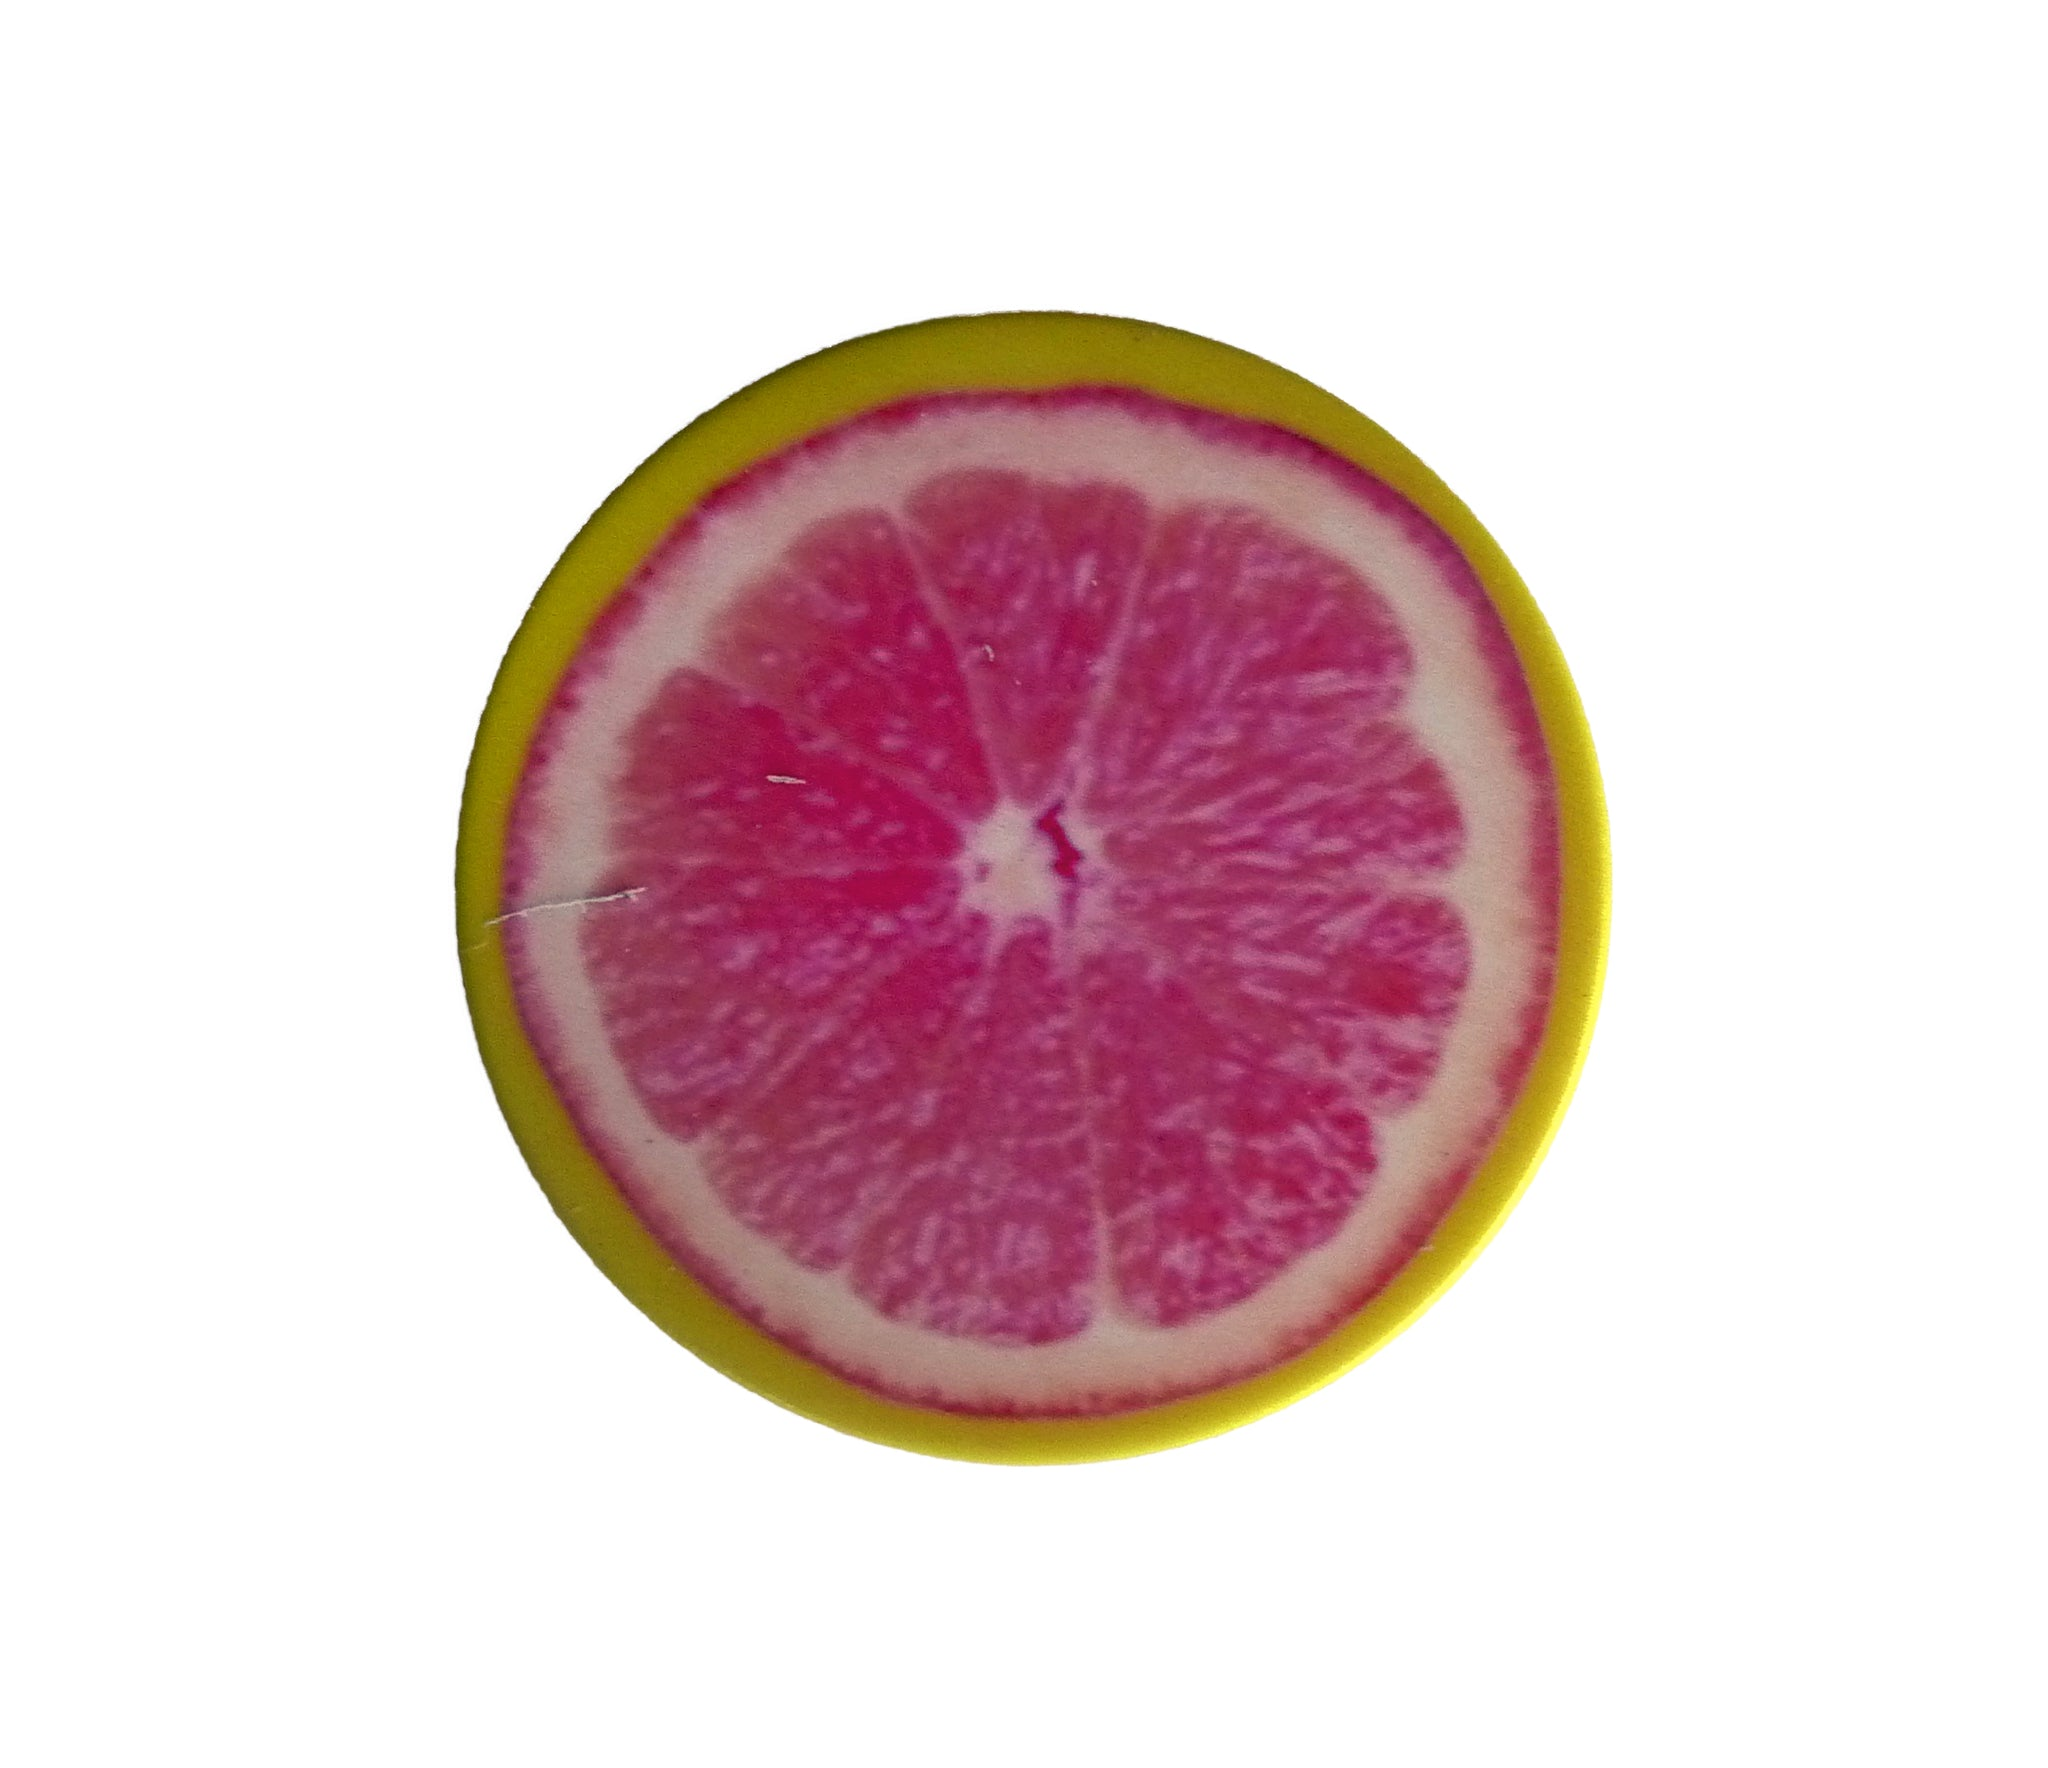 Grapefruit Popsocket